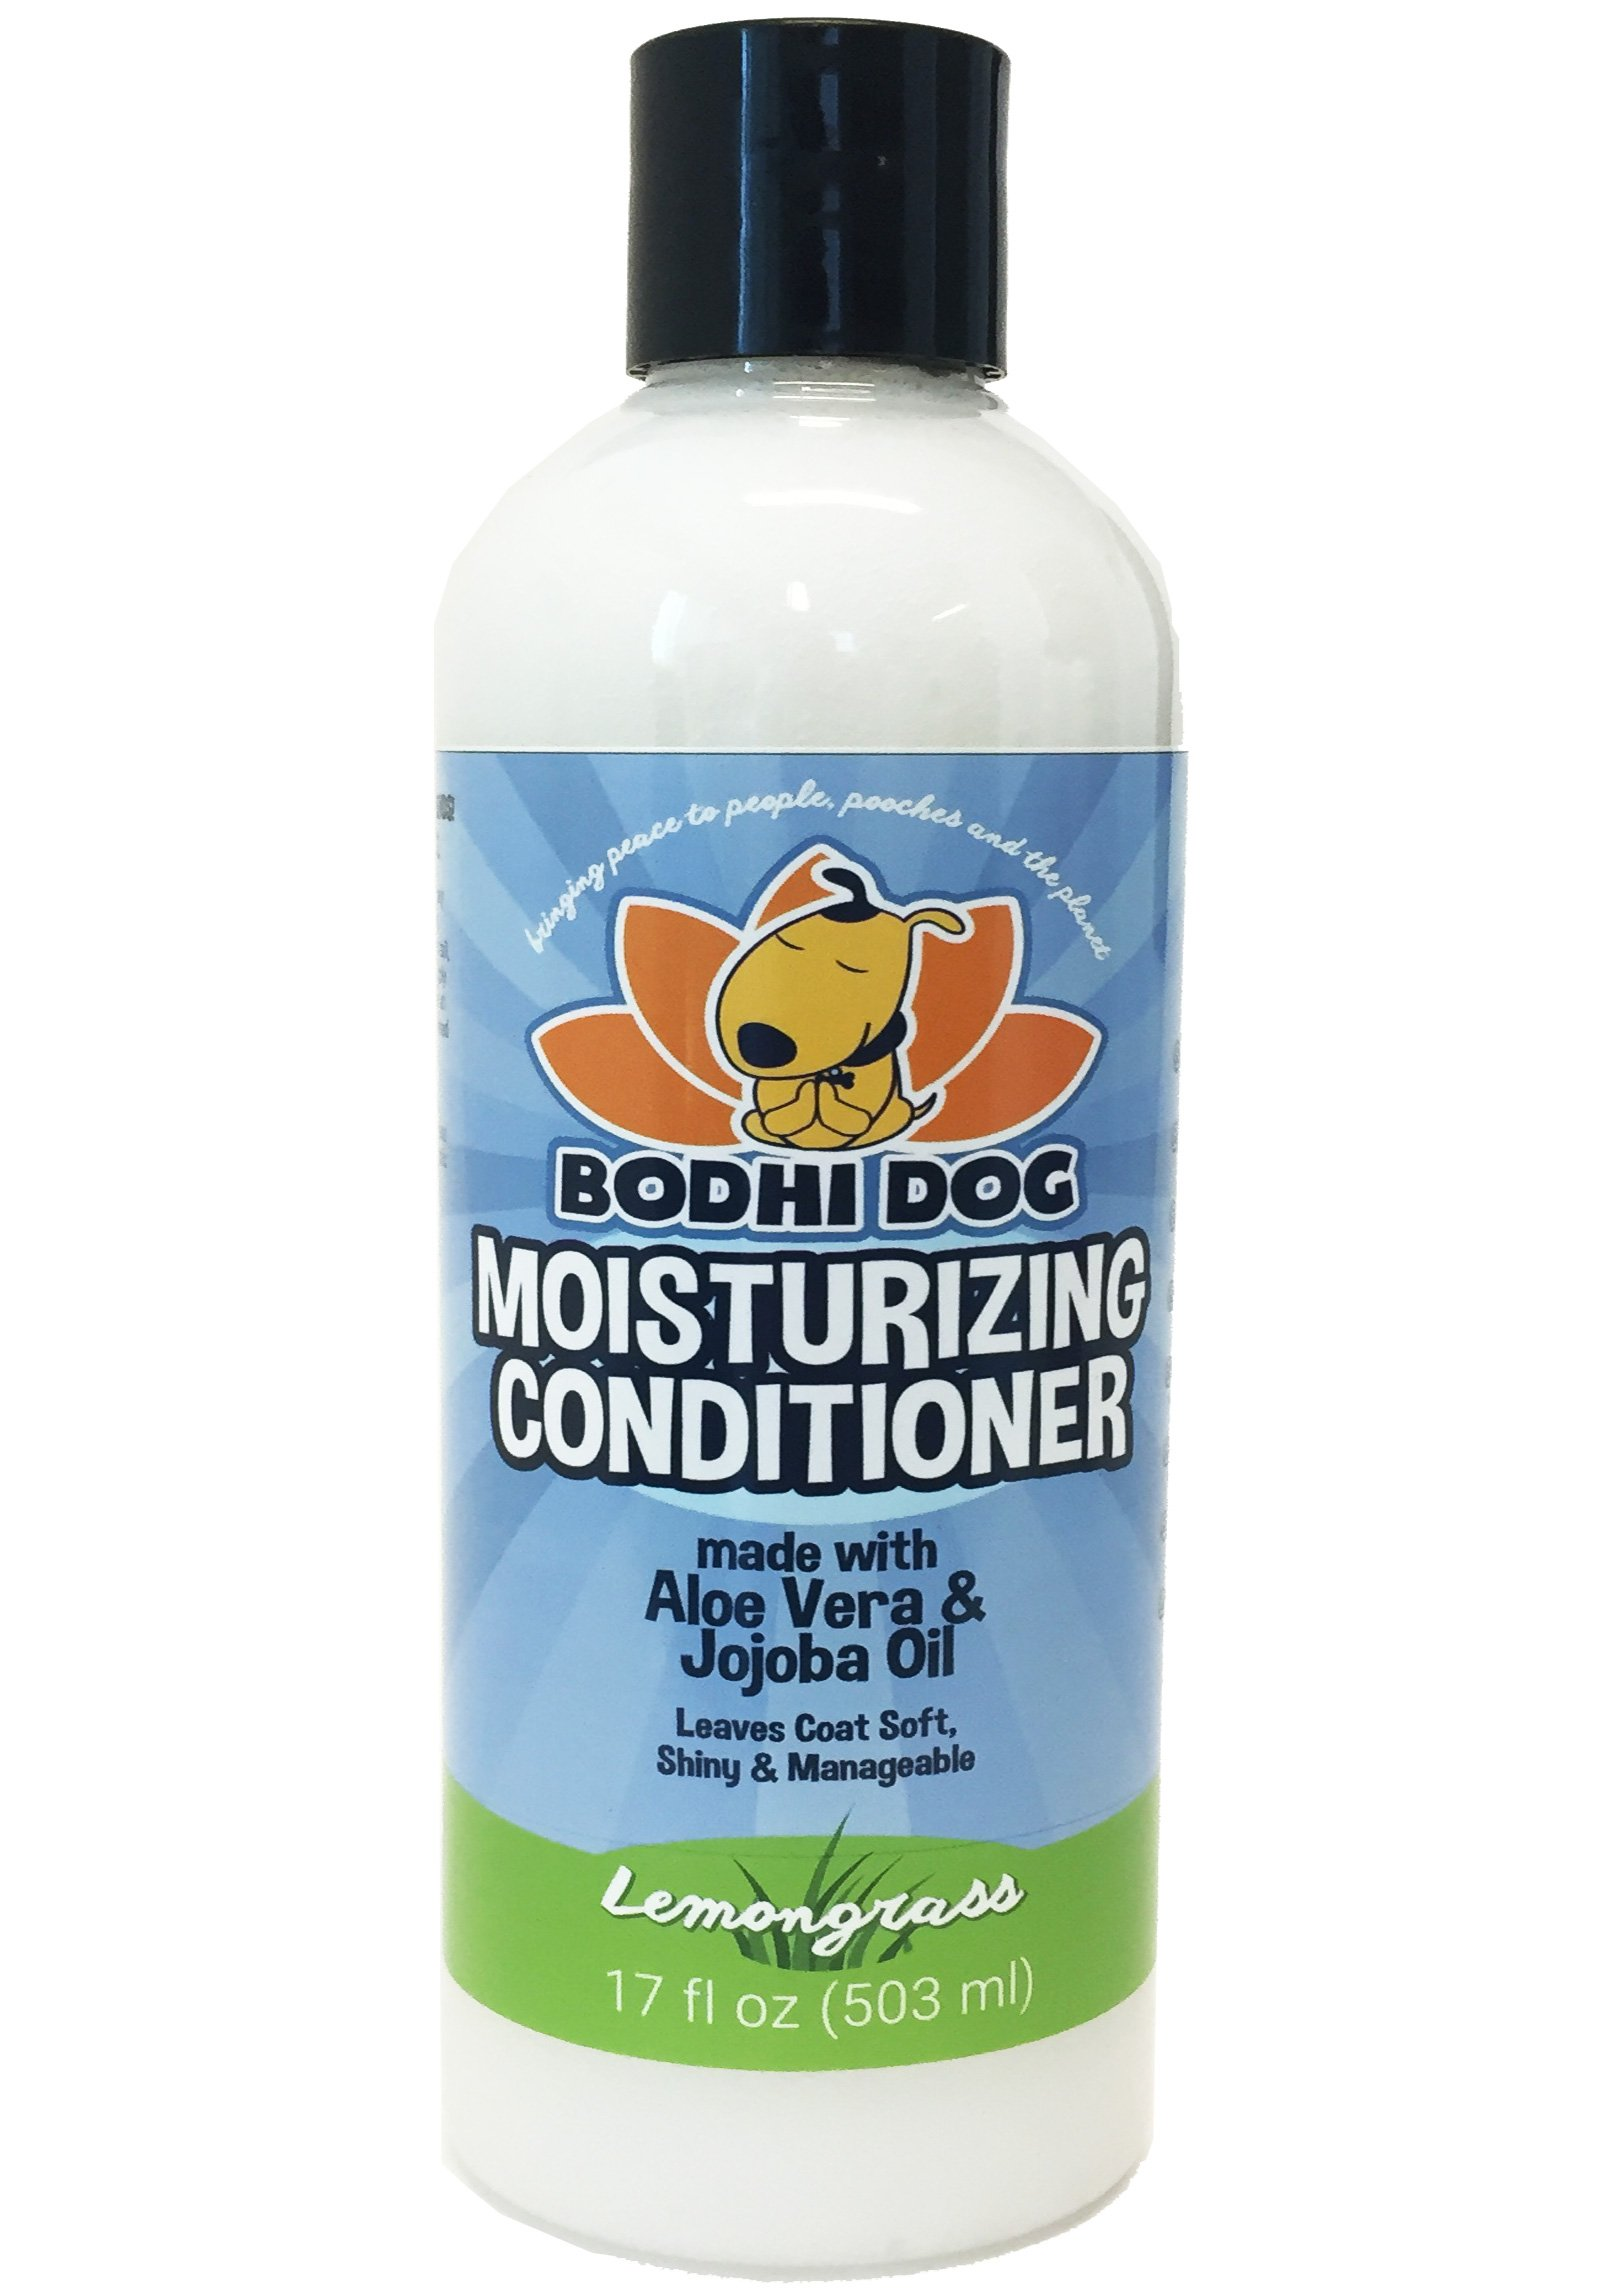 NEW Natural Moisturizing Pet Conditioner | Conditioning for Dogs, Cats and more | Soothing Aloe Vera & Jojoba Oil | Professional Grade Treatment - Made in the USA - 1 Bottle 17oz (503ml) (Lemongrass)